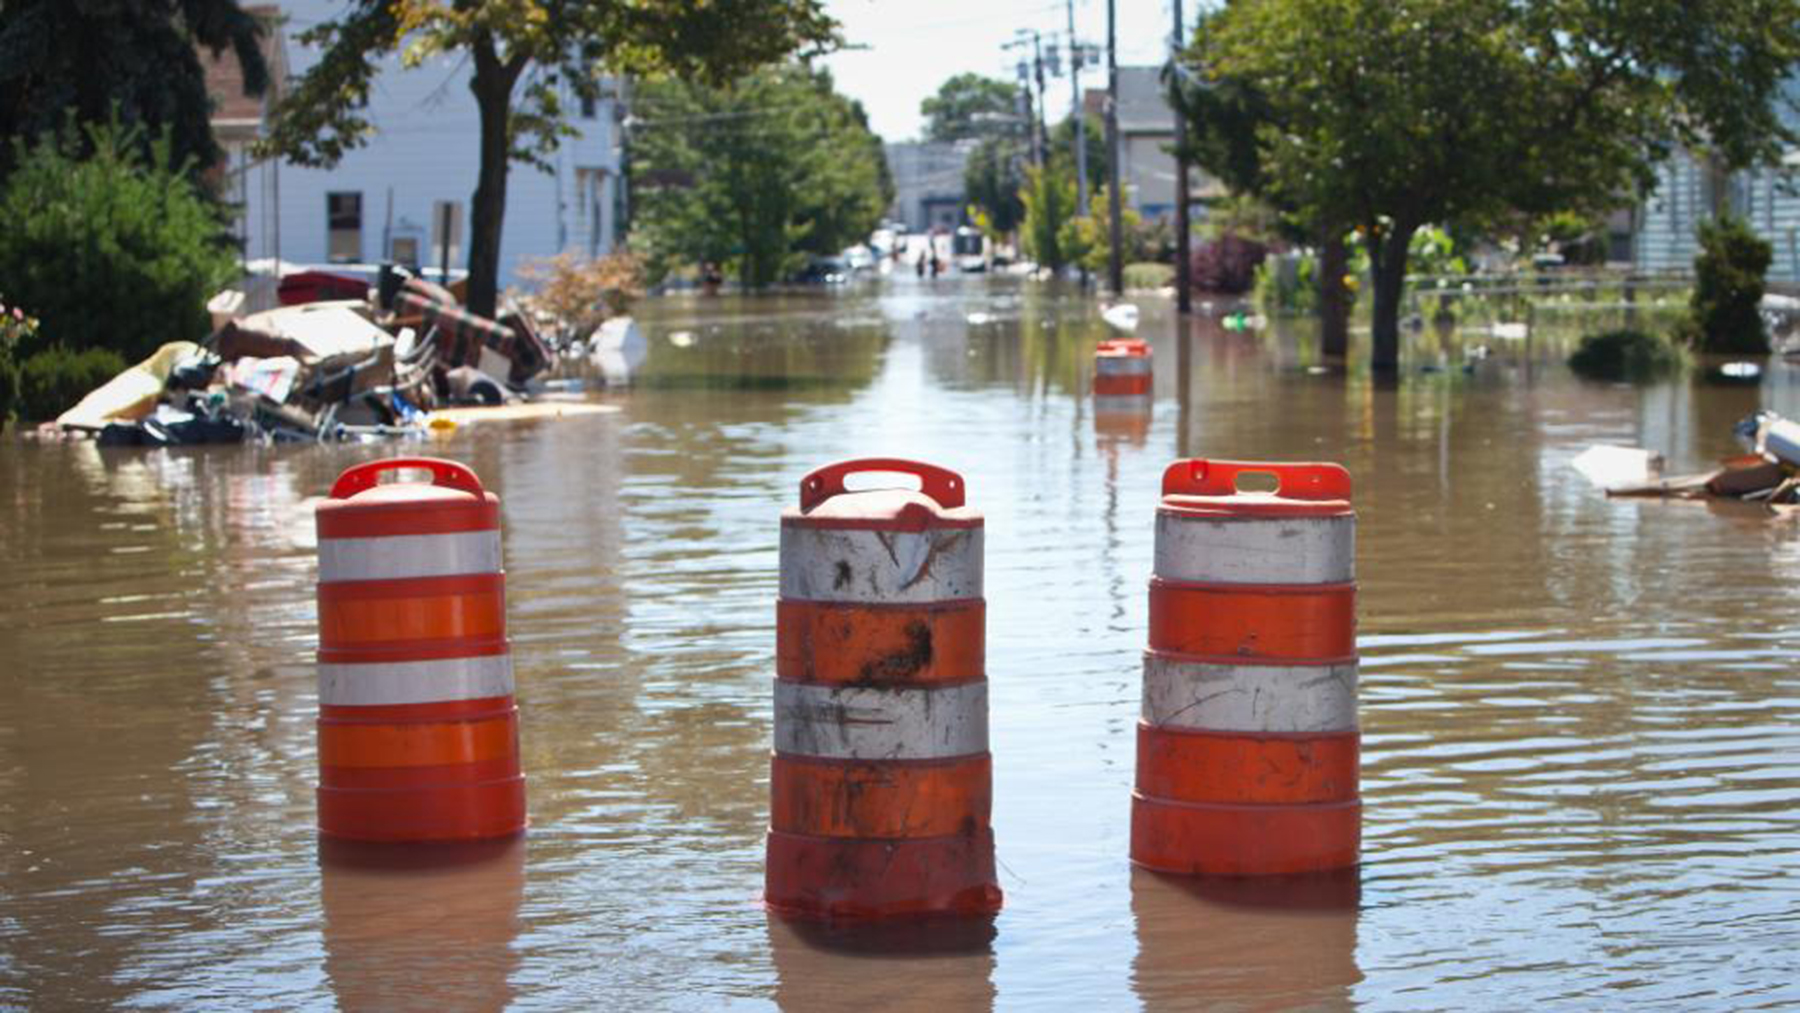 Flooded streets in the wake of Tropical Storm Hanna. (Photo courtesy of the Department of Health and Human Services)